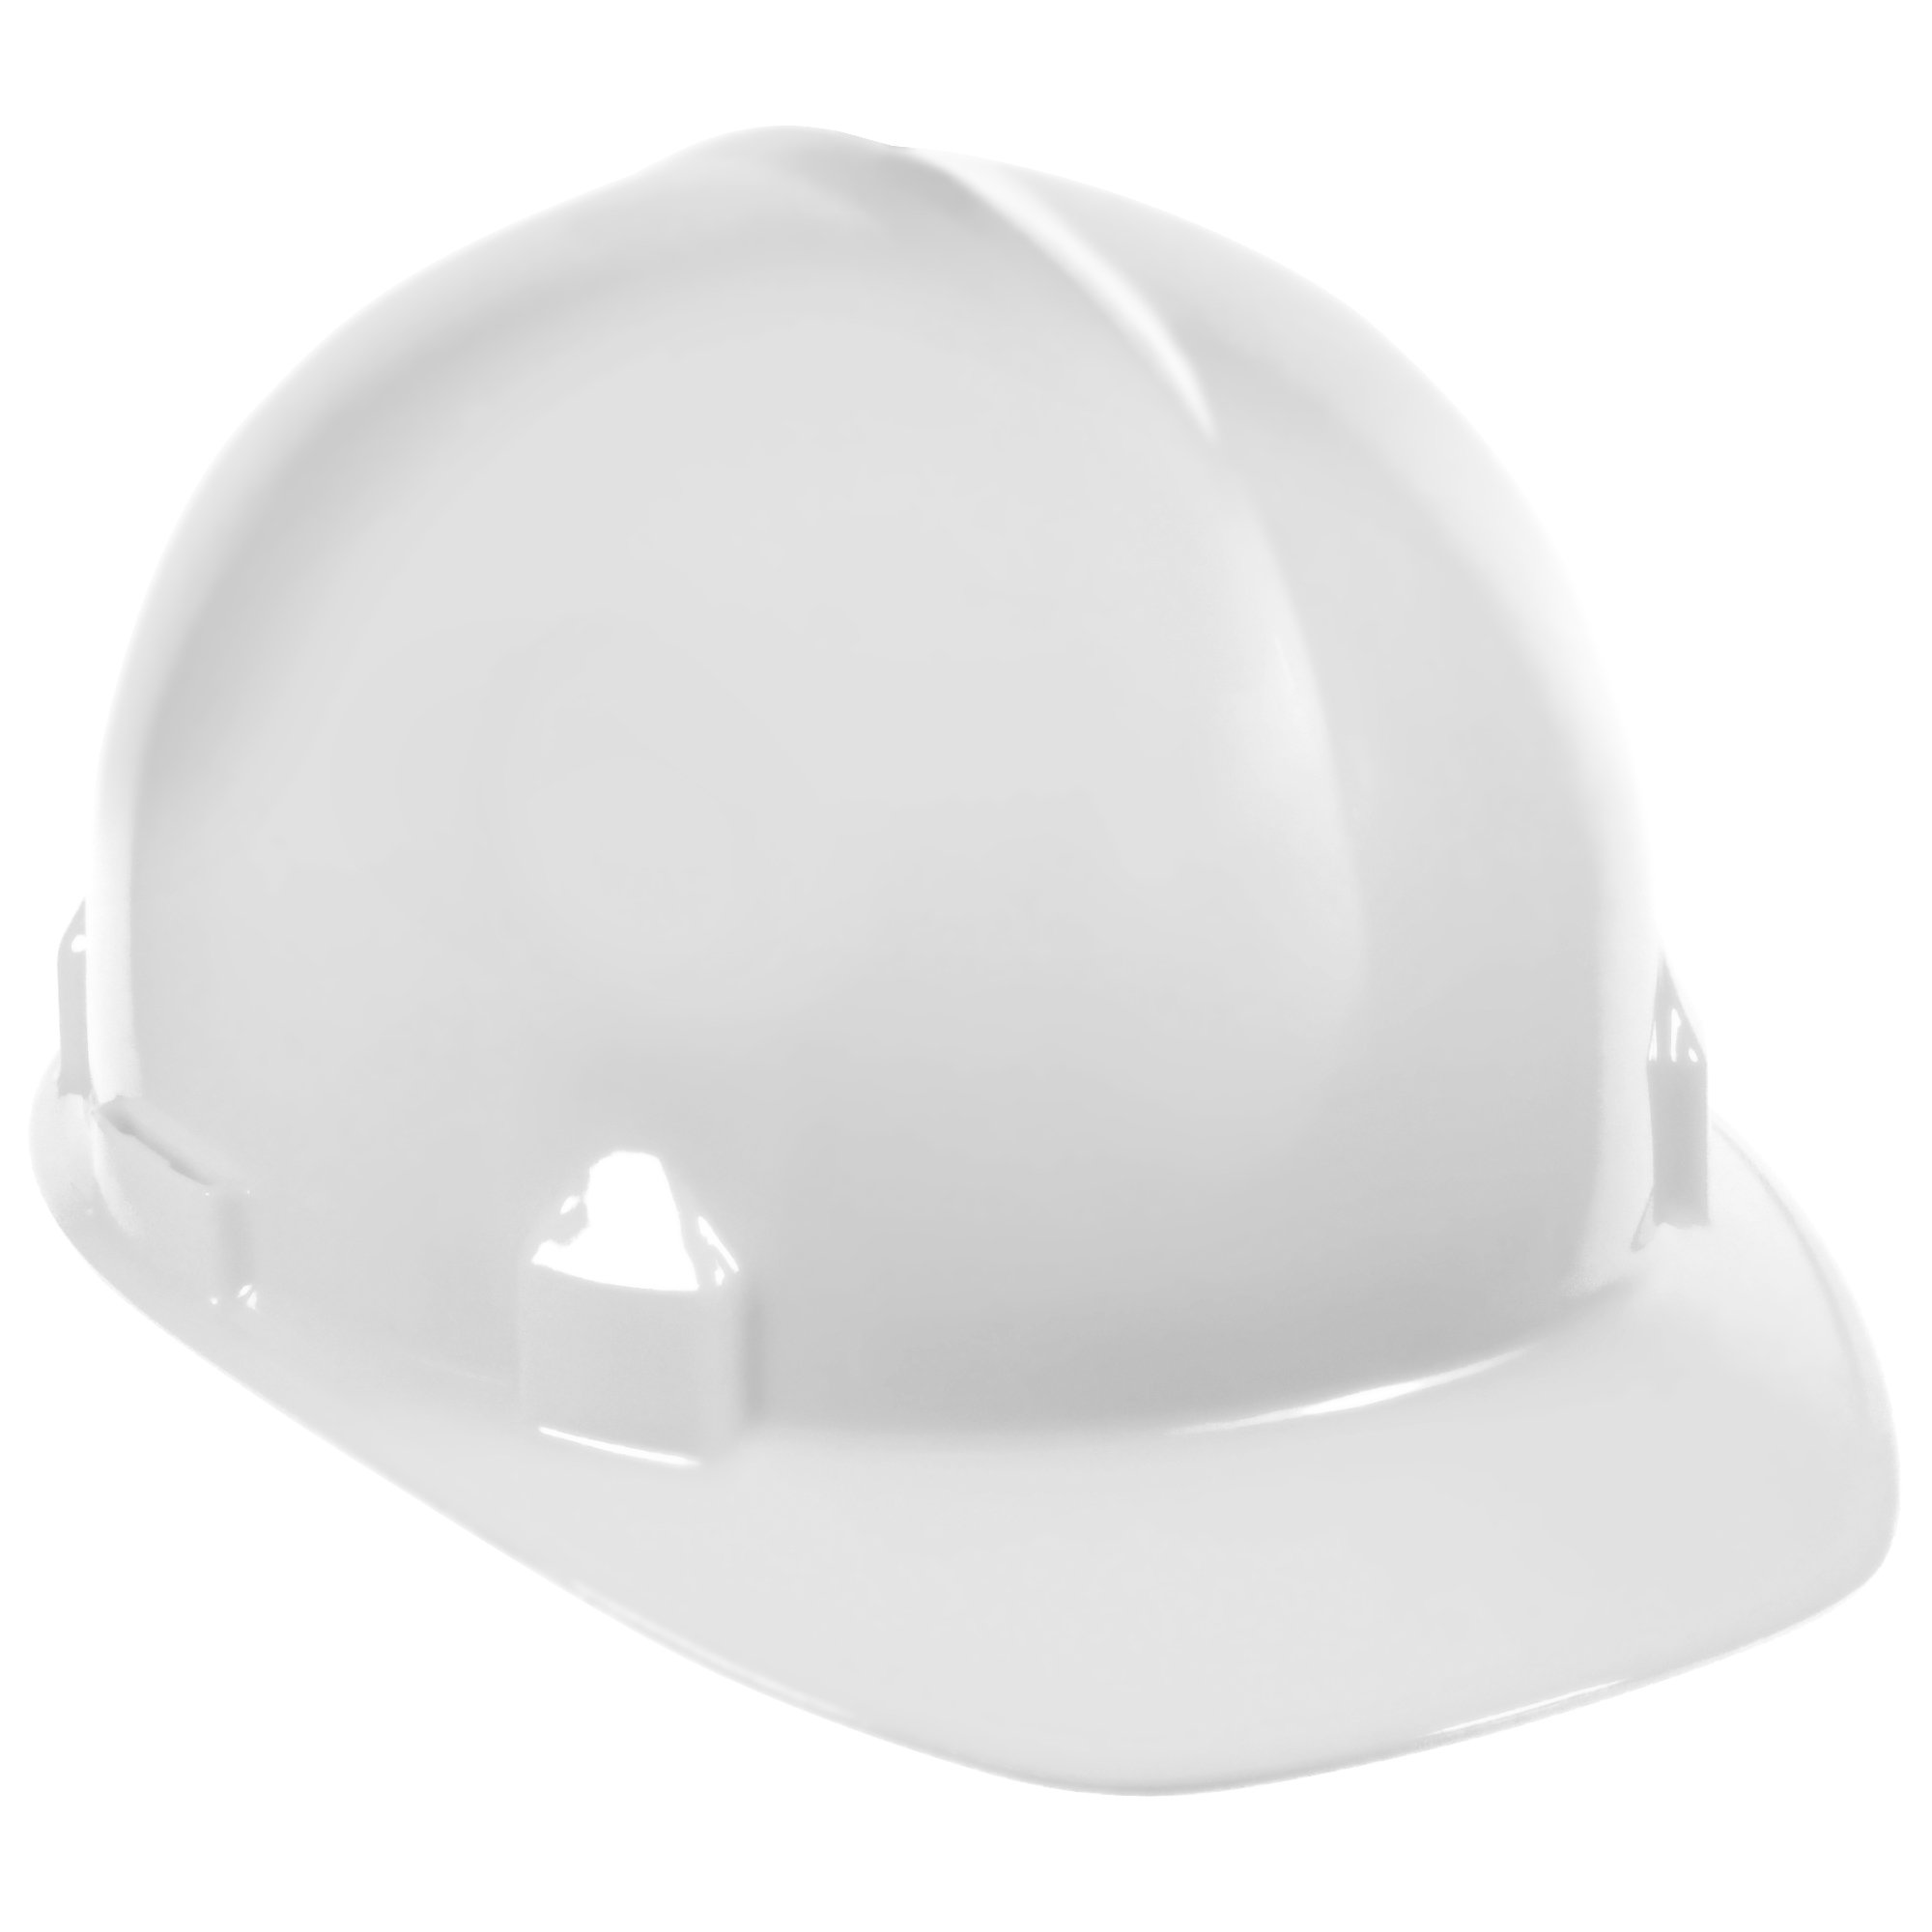 Jackson Safety SC-6 Hard Hat (14834), 4-Point Ratchet Suspension, Smooth Dome, Meets ANSI, White, 12 / Case